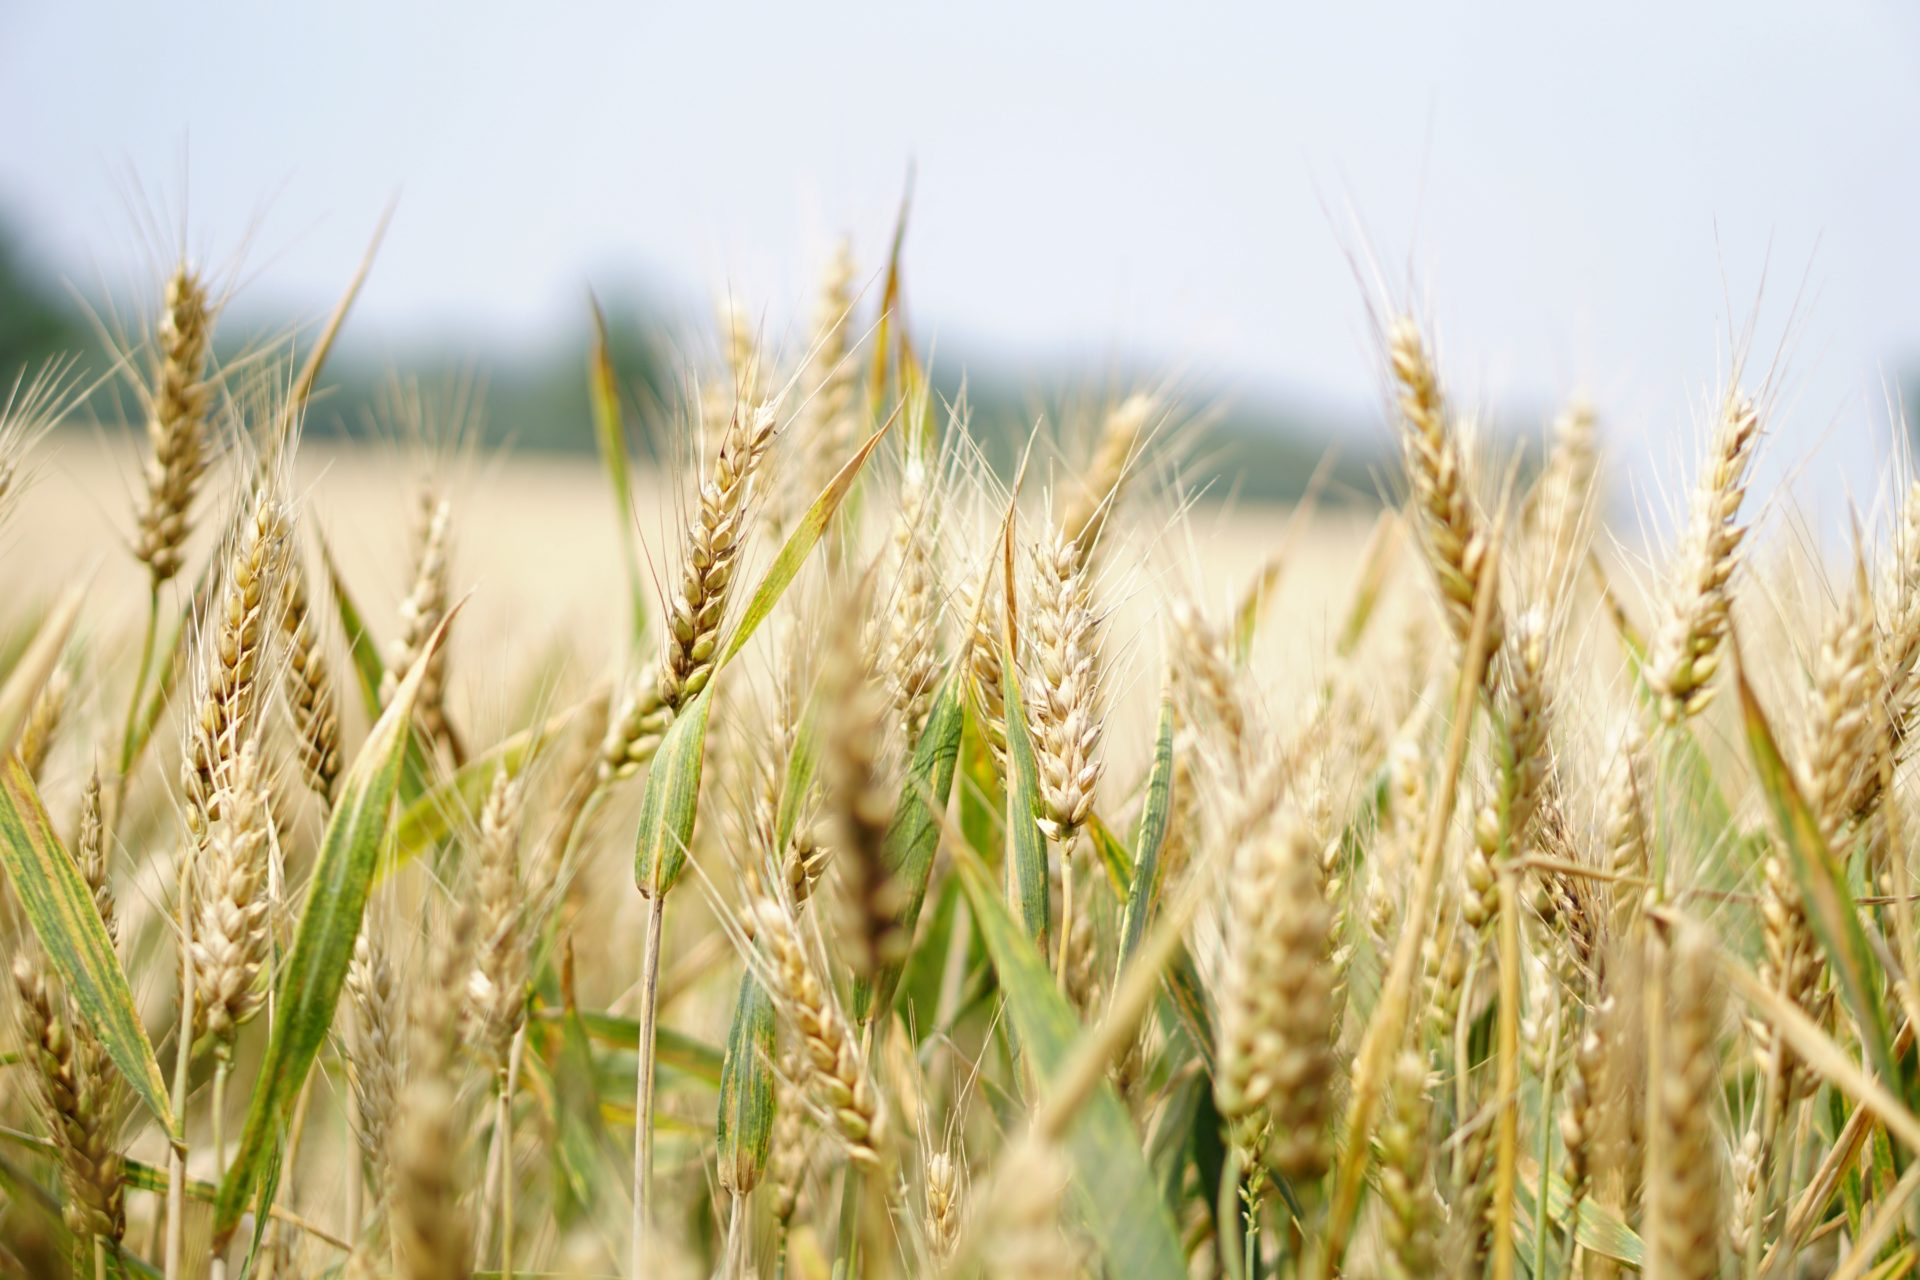 A FarmSol partnership with South African Breweries has allowed close to a thousand smallholder farmers across South Africa access to a multinational market for malting barley, hops and non-genetically modified maize. Pexels Image